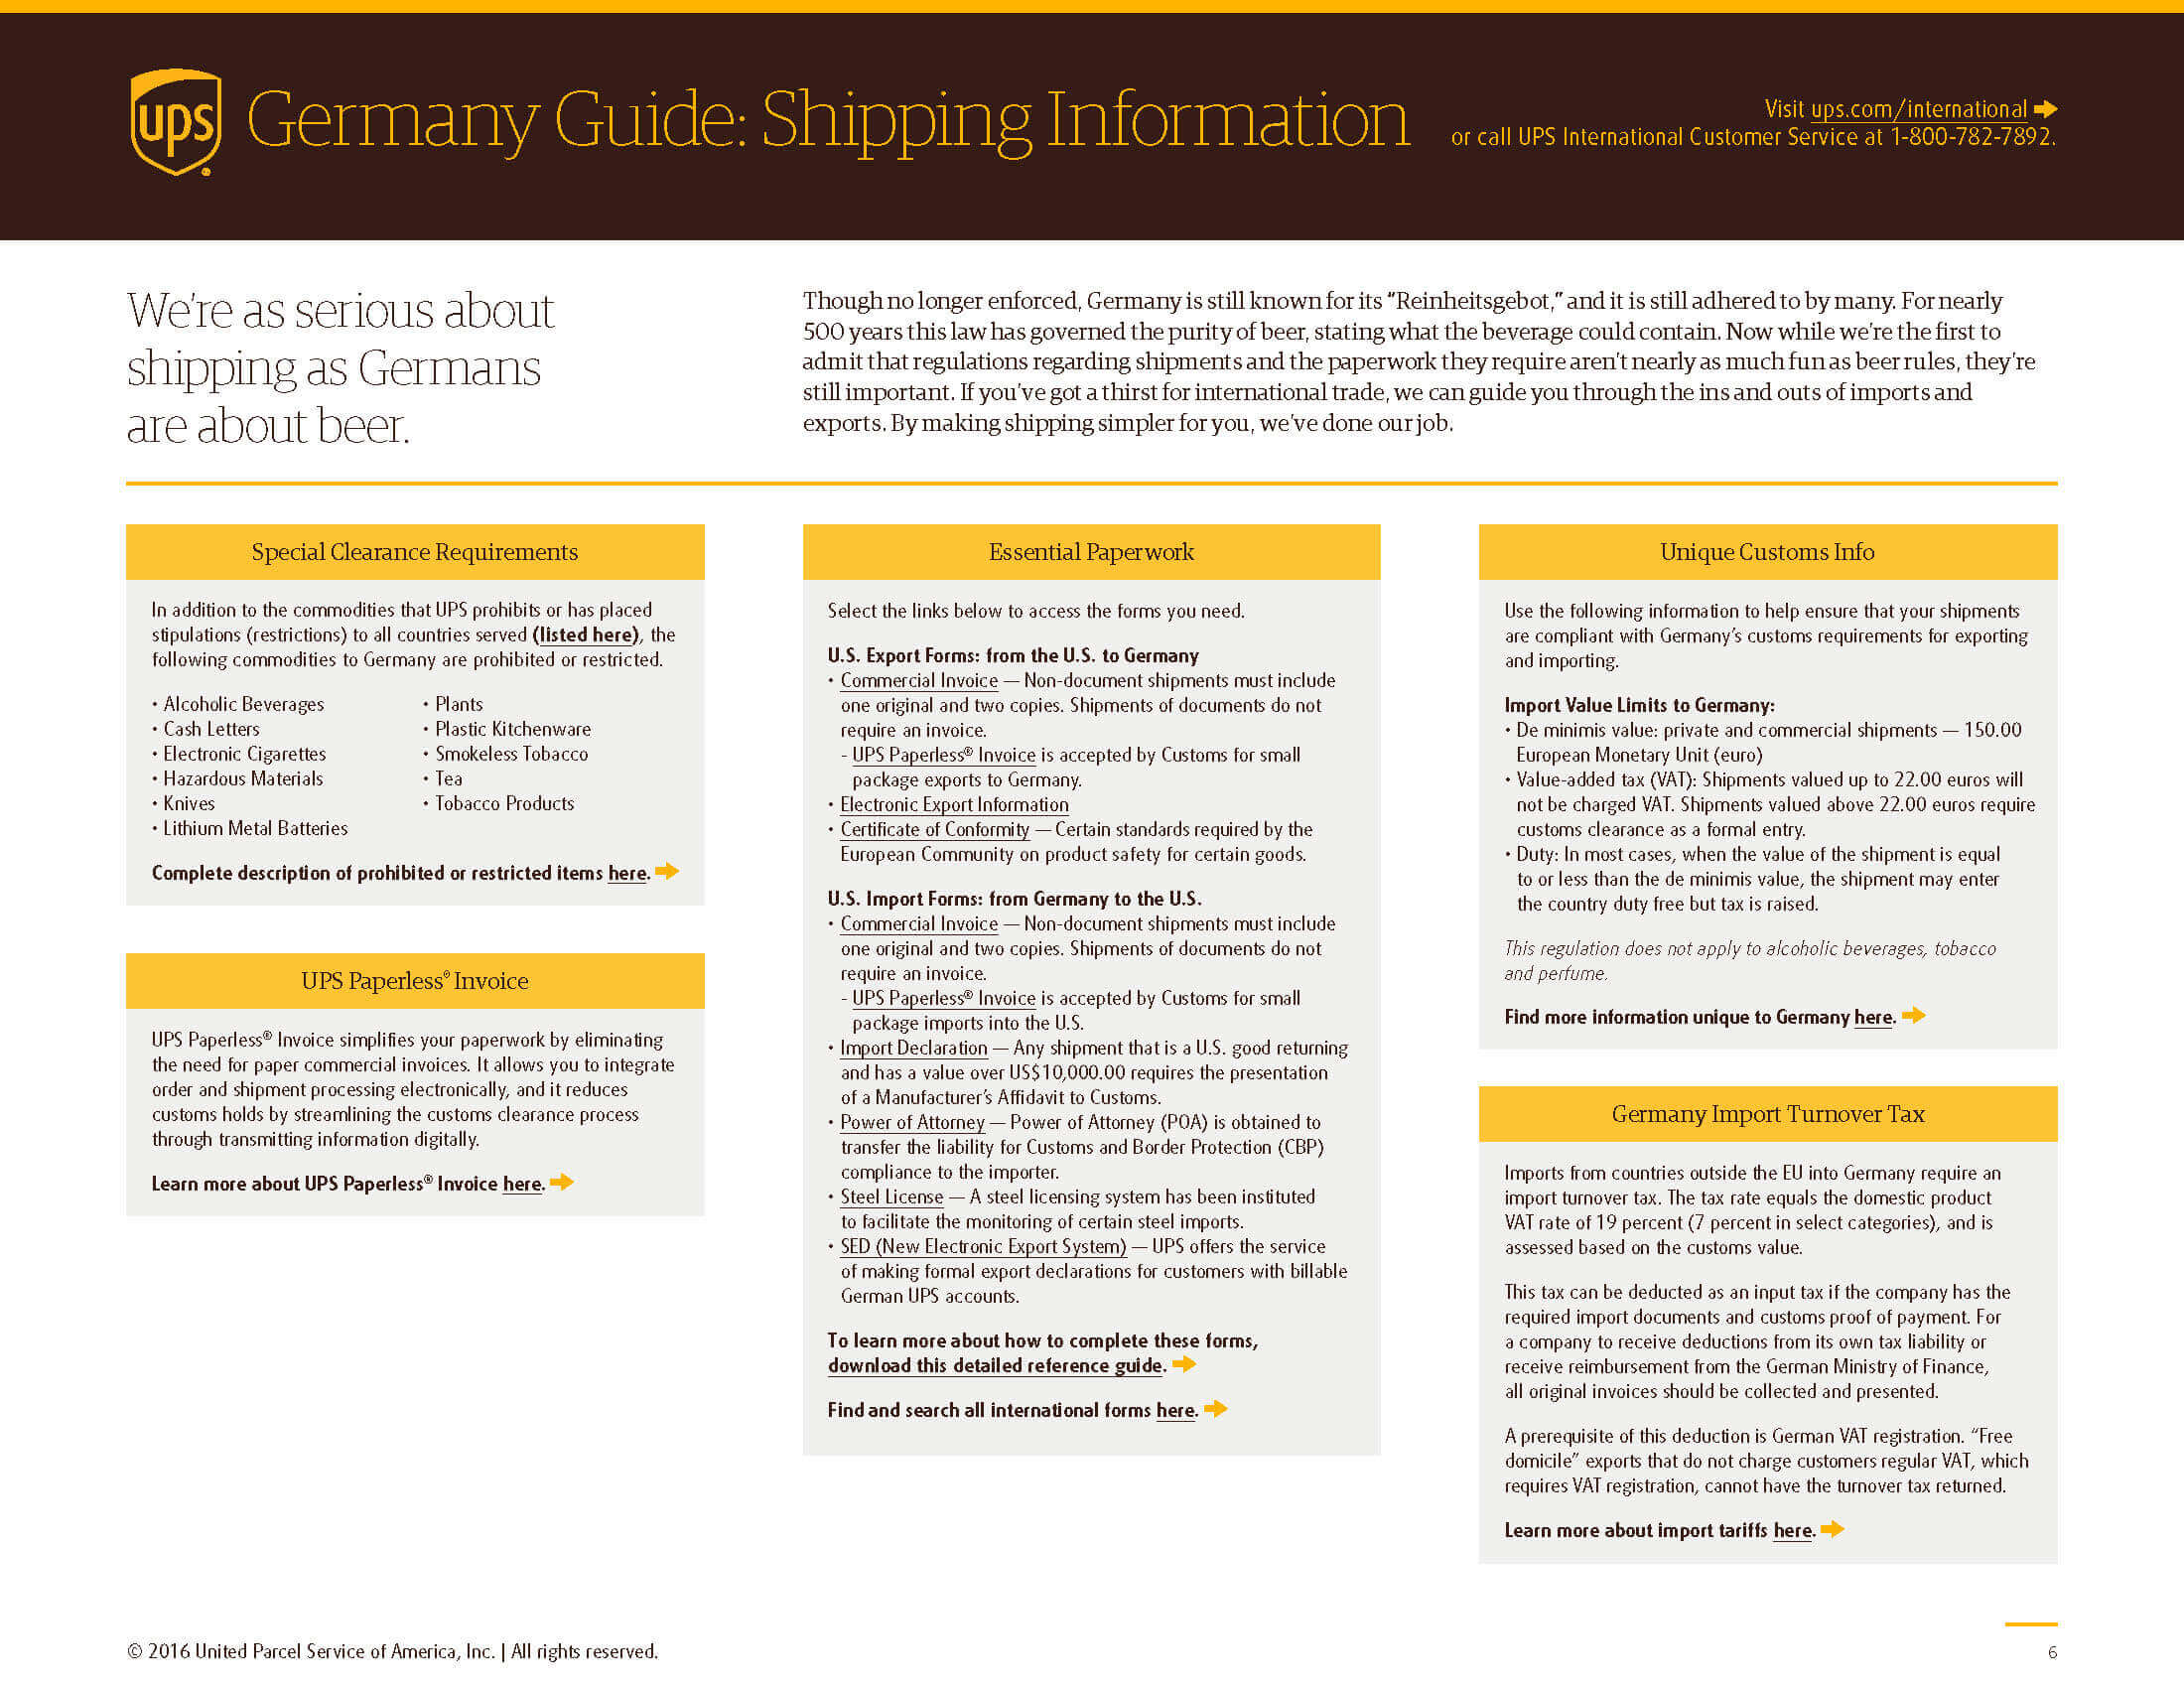 15up20068_germany guide_2016_final_page_6